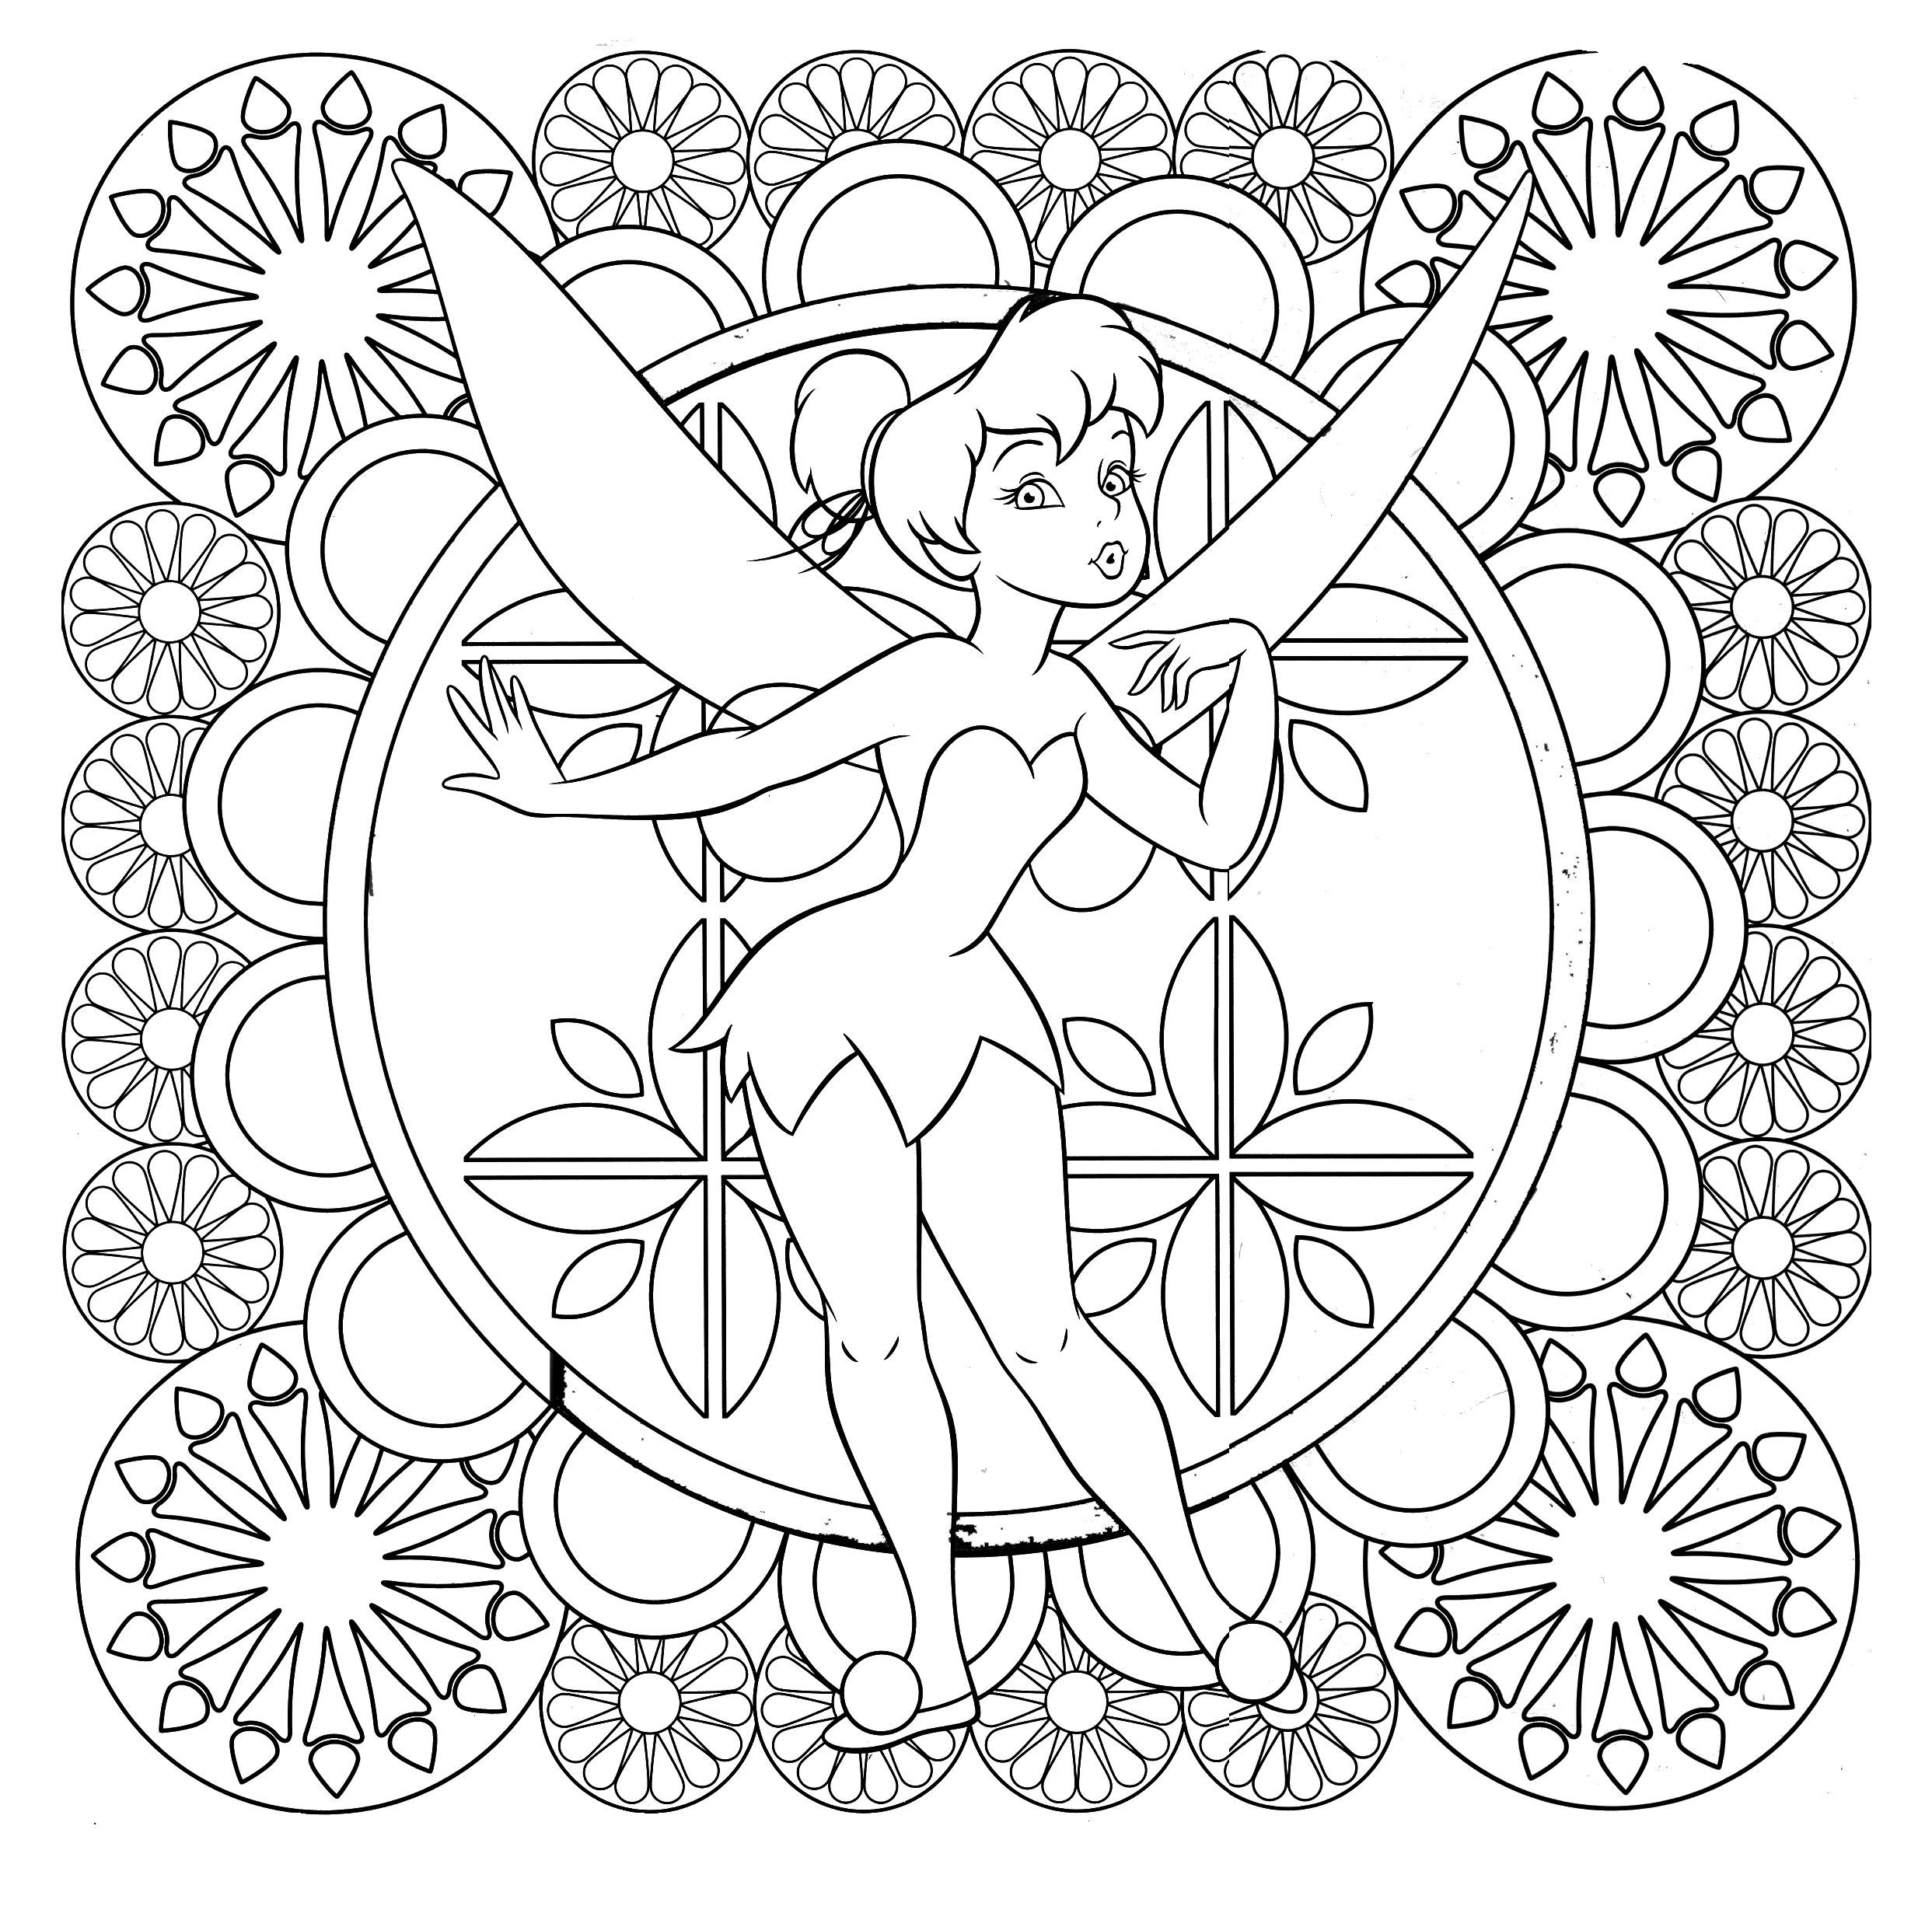 Tinkerbell Difficult Coloring Page Tinkerbell Coloring Pages